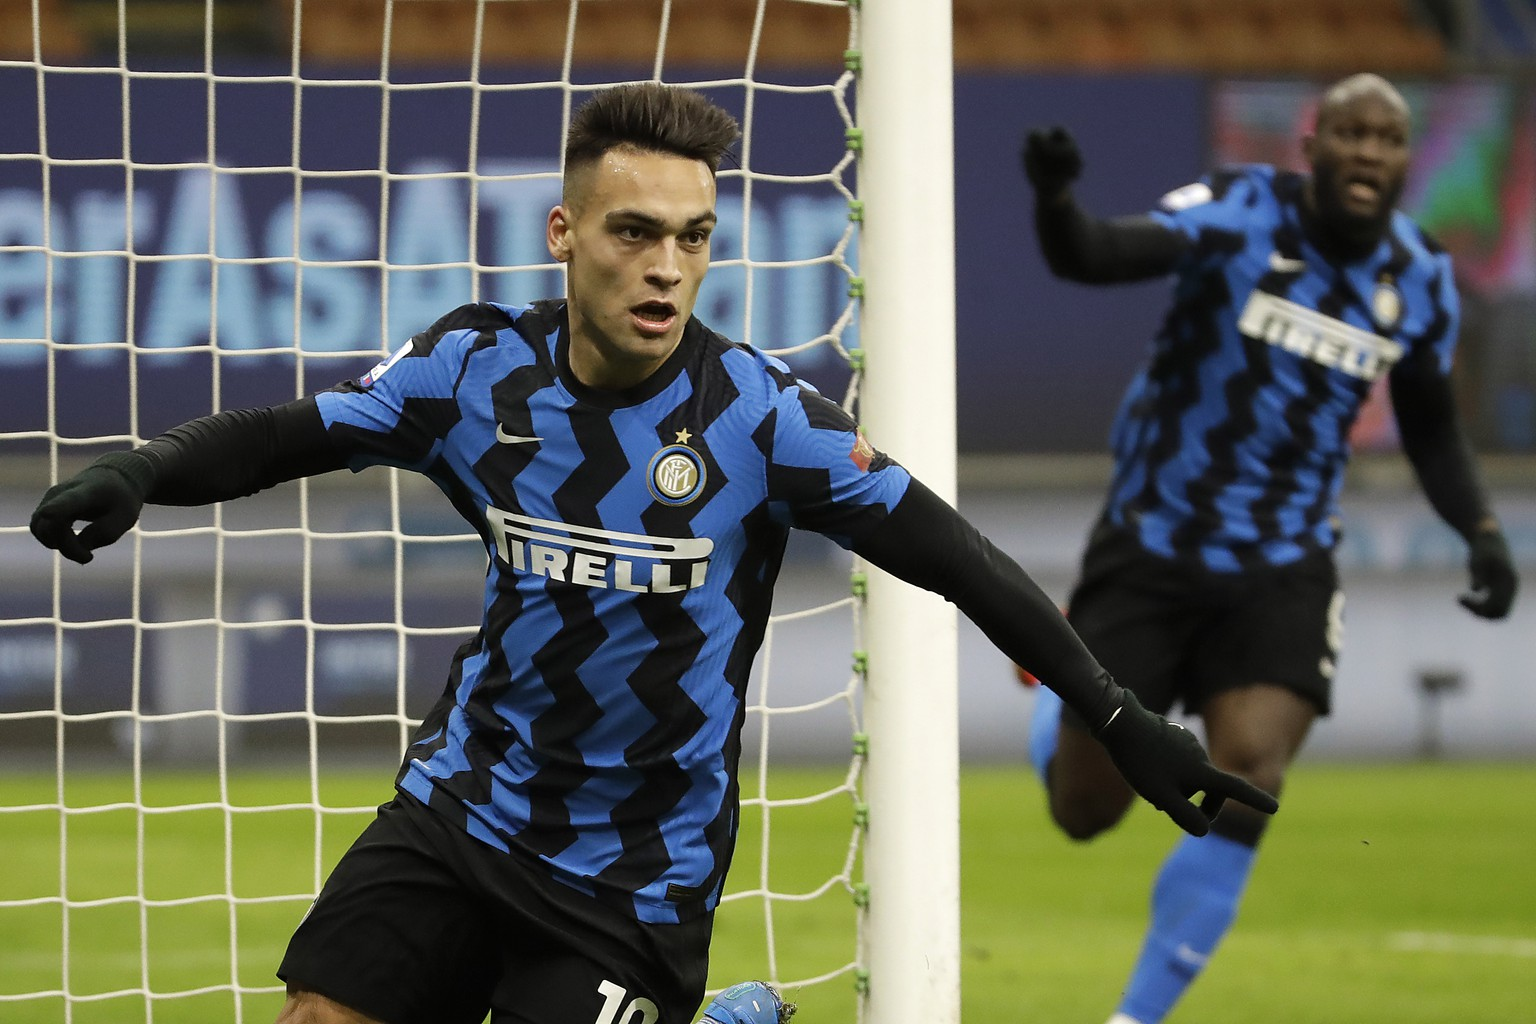 Inter Milan's Lautaro Martinez celebrates his goal against Lazio during a Serie A soccer match between Inter Milan and Lazio at the San Siro stadium in Milan, Italy, Sunday, Feb. 14, 2021. (AP Photo/Luca Bruno)